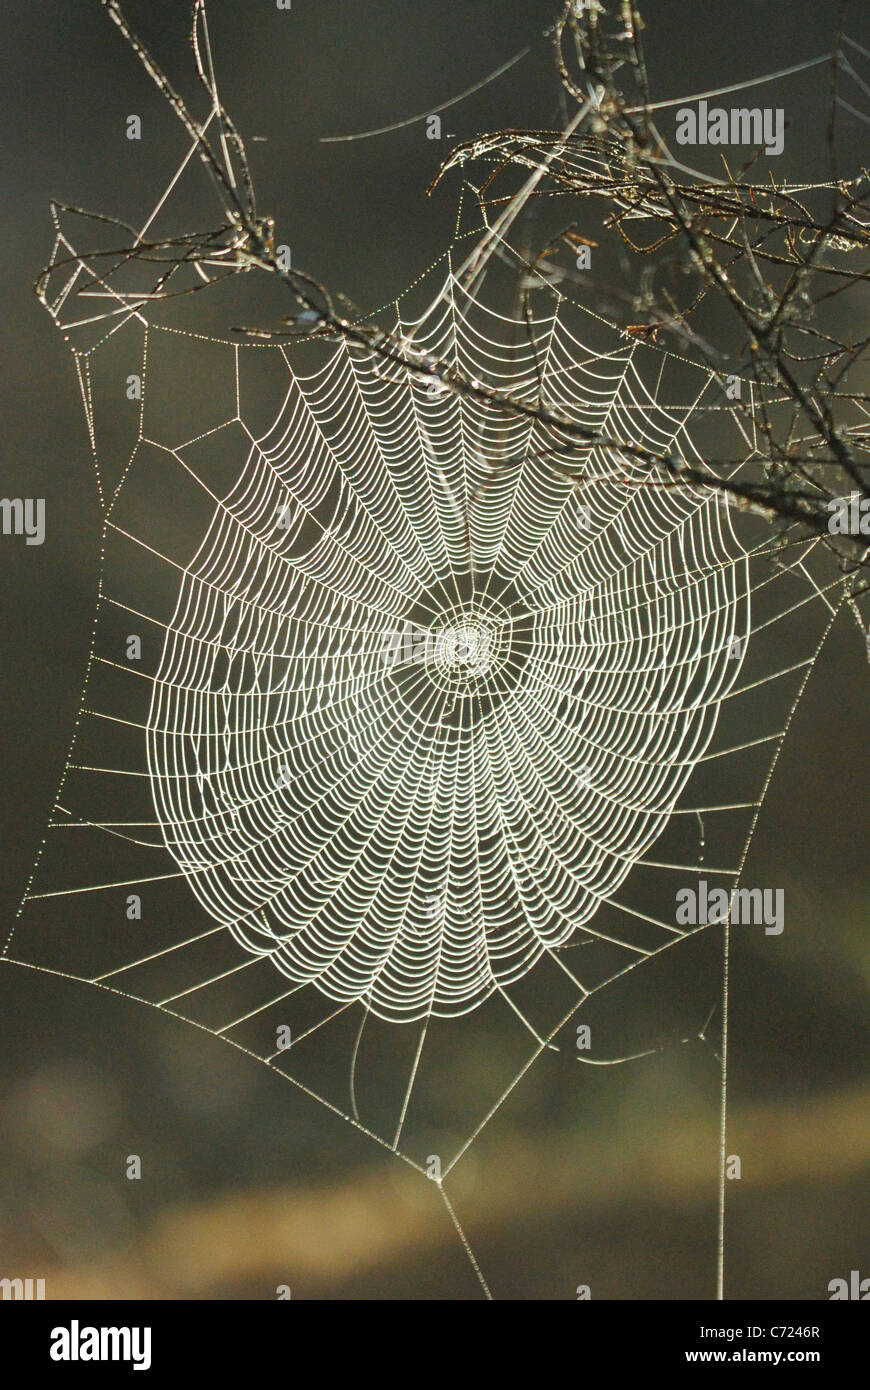 Spider's web in the wilderness of Malingsbo-Kloten Nature Reserve, Sweden - Stock Image